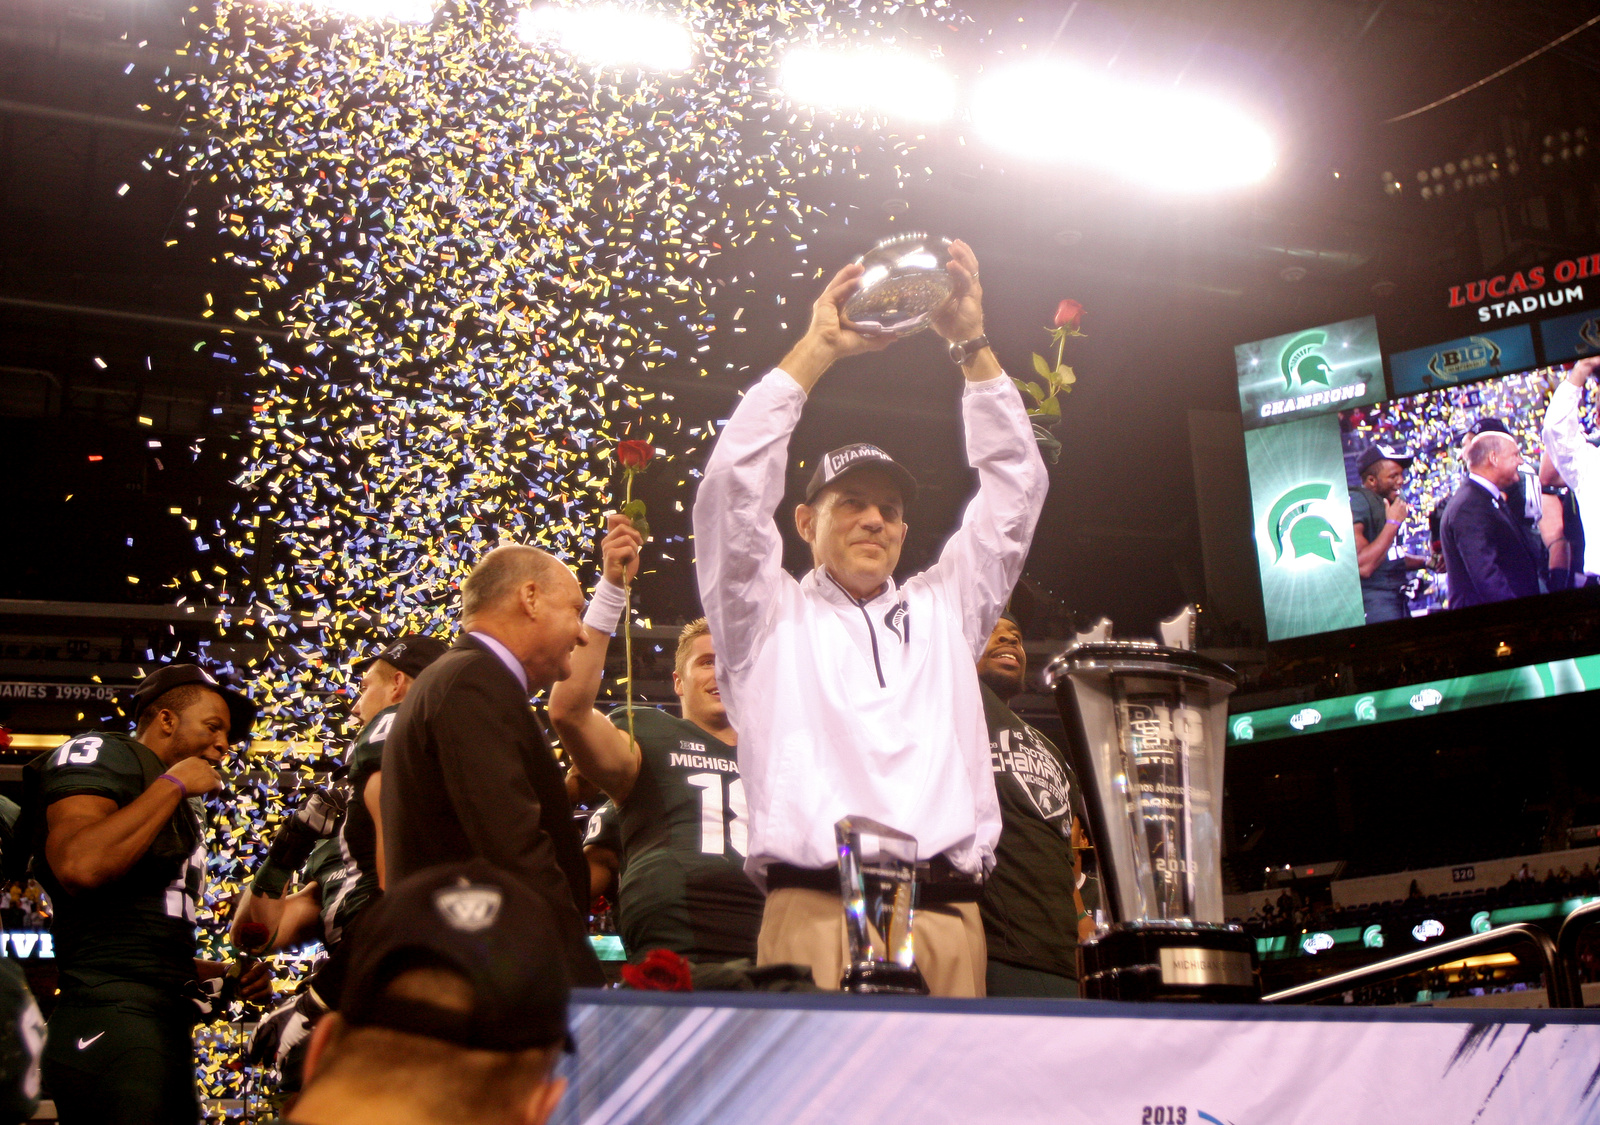 Michigan State coach Mark Dantonio holds the trophy above his head after the game. OSU lost to Michigan State, 34-24, in the Big Ten Championship at Lucas Oil Stadium in Indianapolis Dec. 7. Credit: Lantern file photo